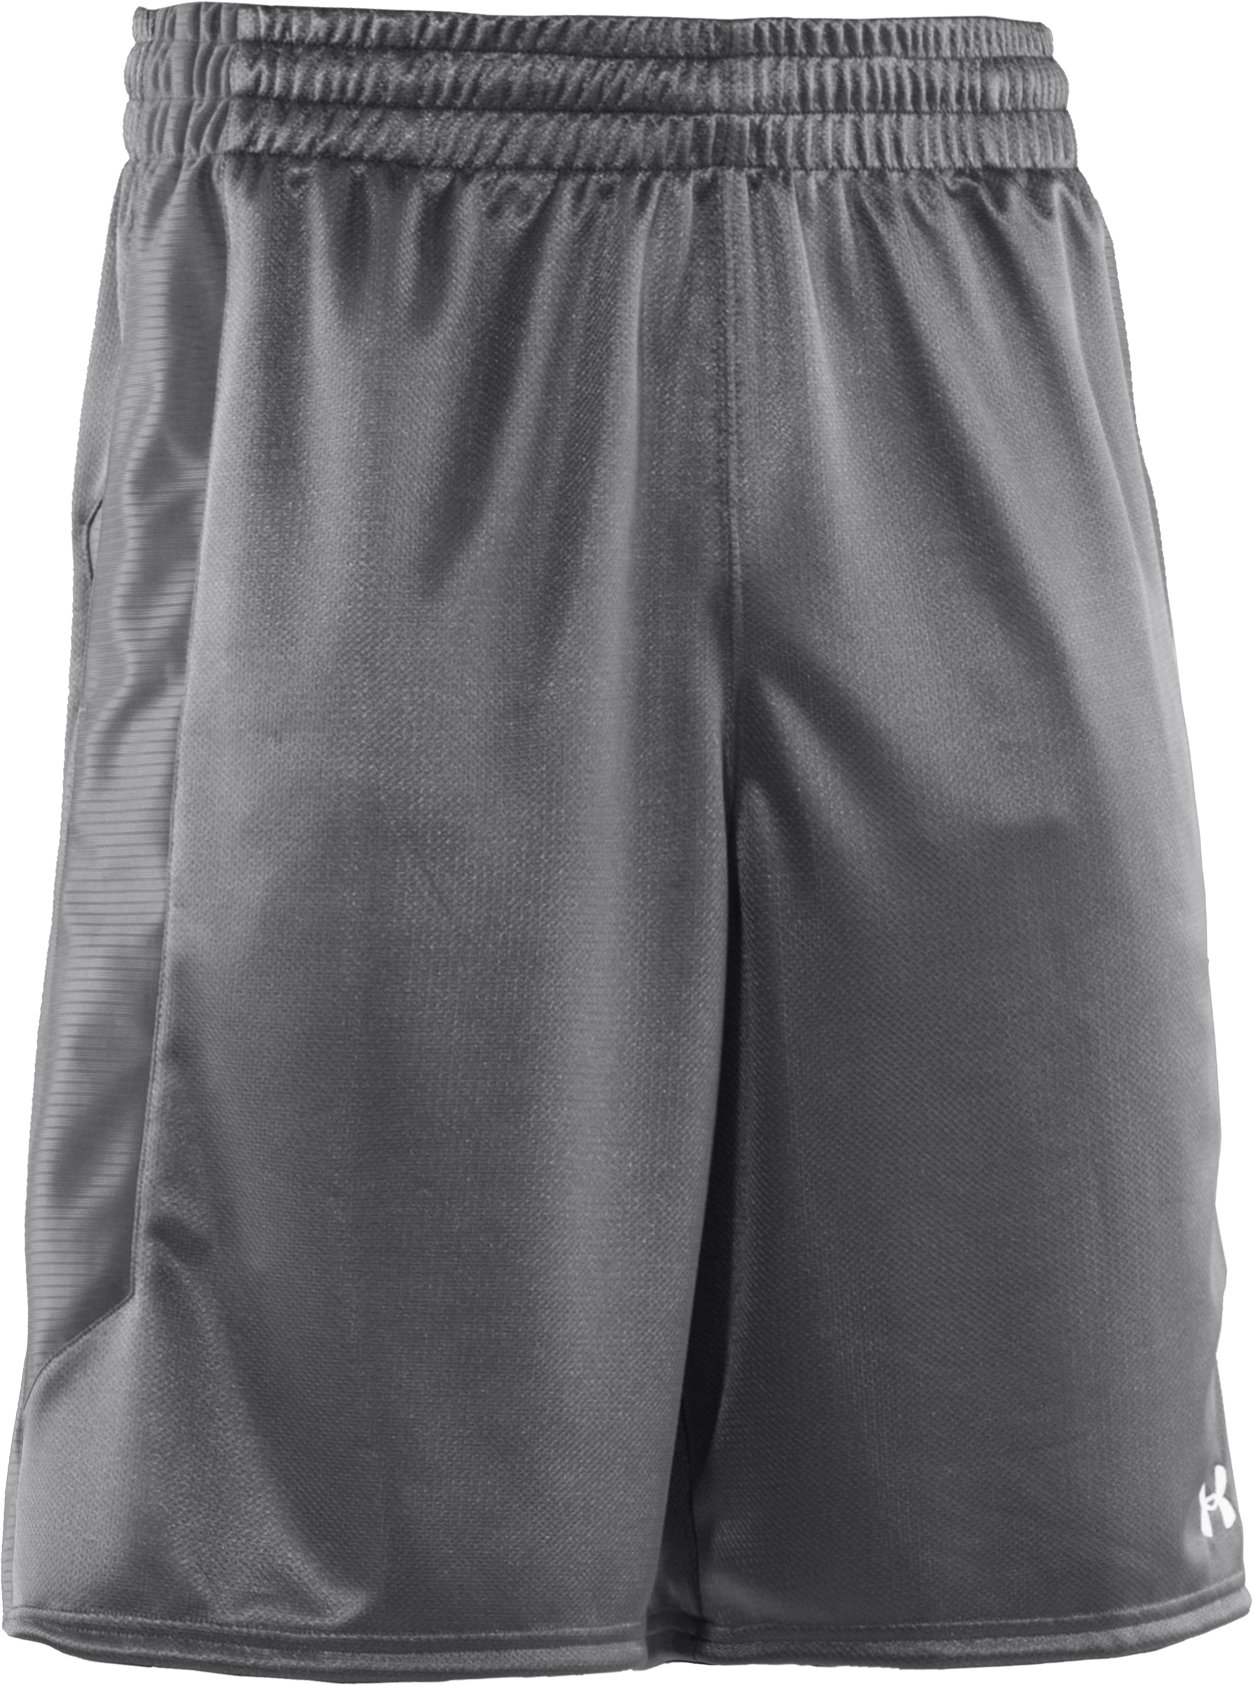 "Men's UA Never Lose 10"" Basketball Shorts, Graphite"